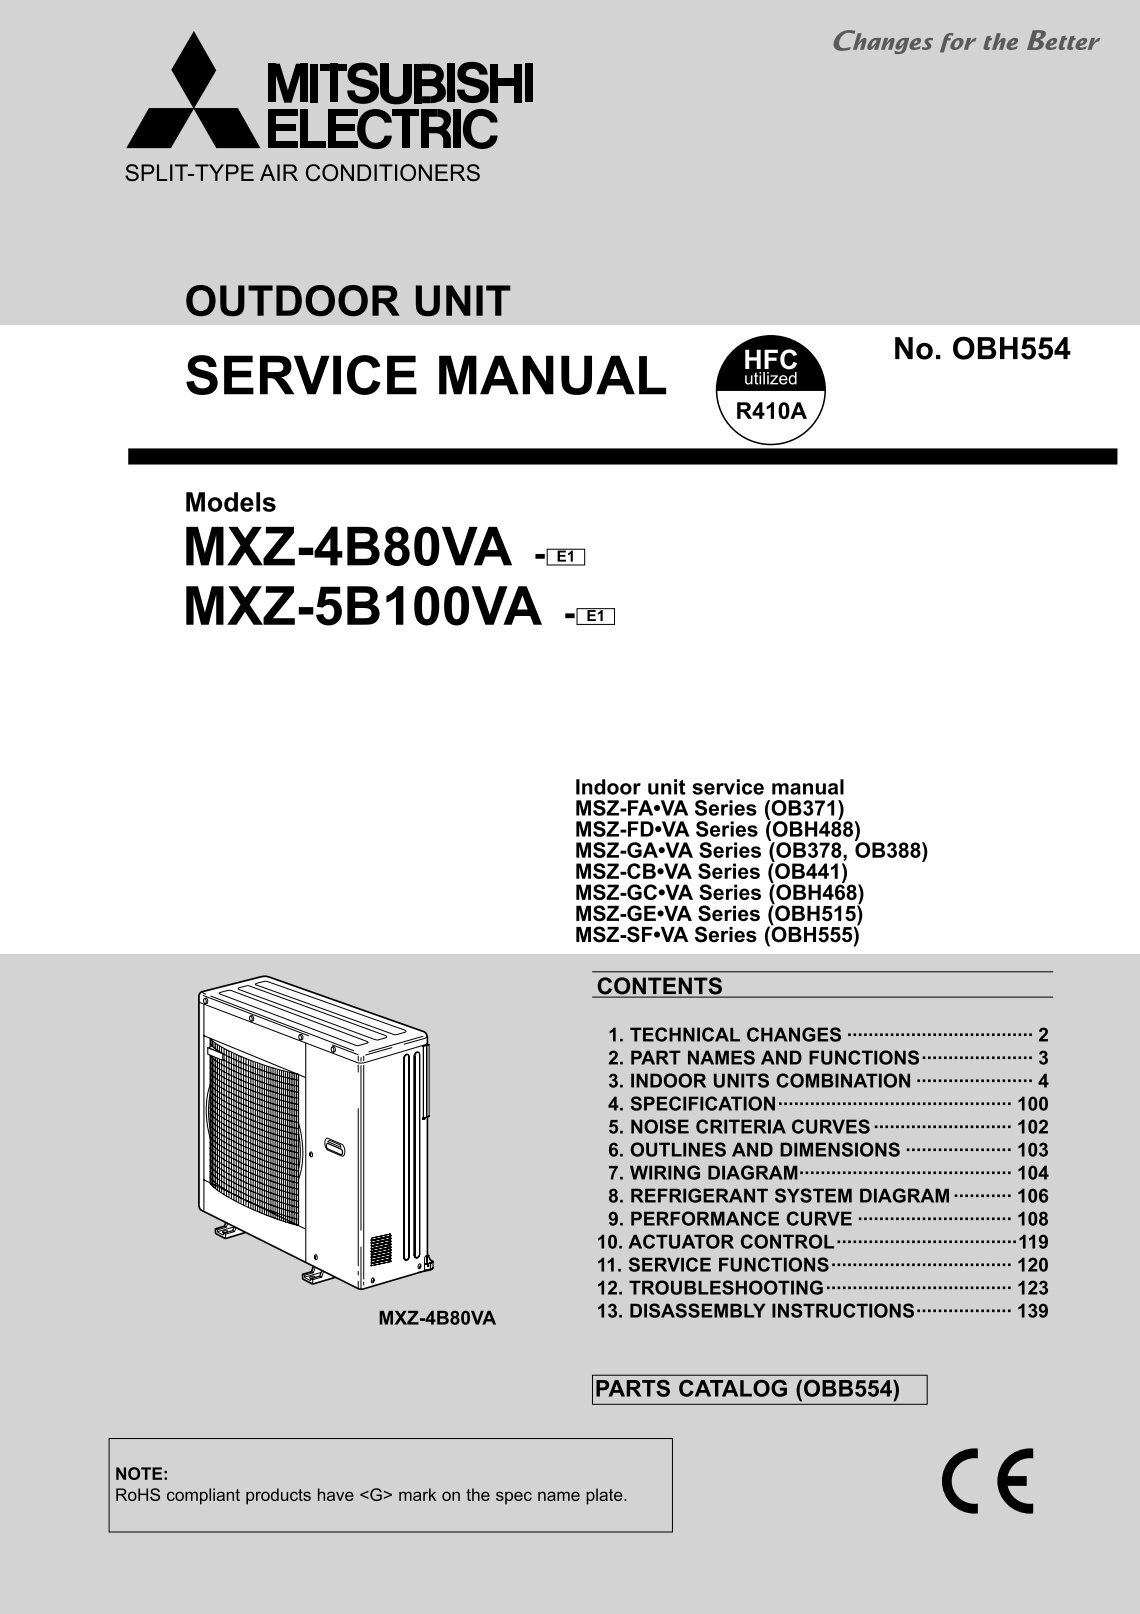 service manual mxz 4b80va e1 mxz 5b100va mitsubishi electric mitsubishi msz wiring diagram mitsubishi schematics and wiring mitsubishi mirage 2000 wiring diagram at gsmportal.co